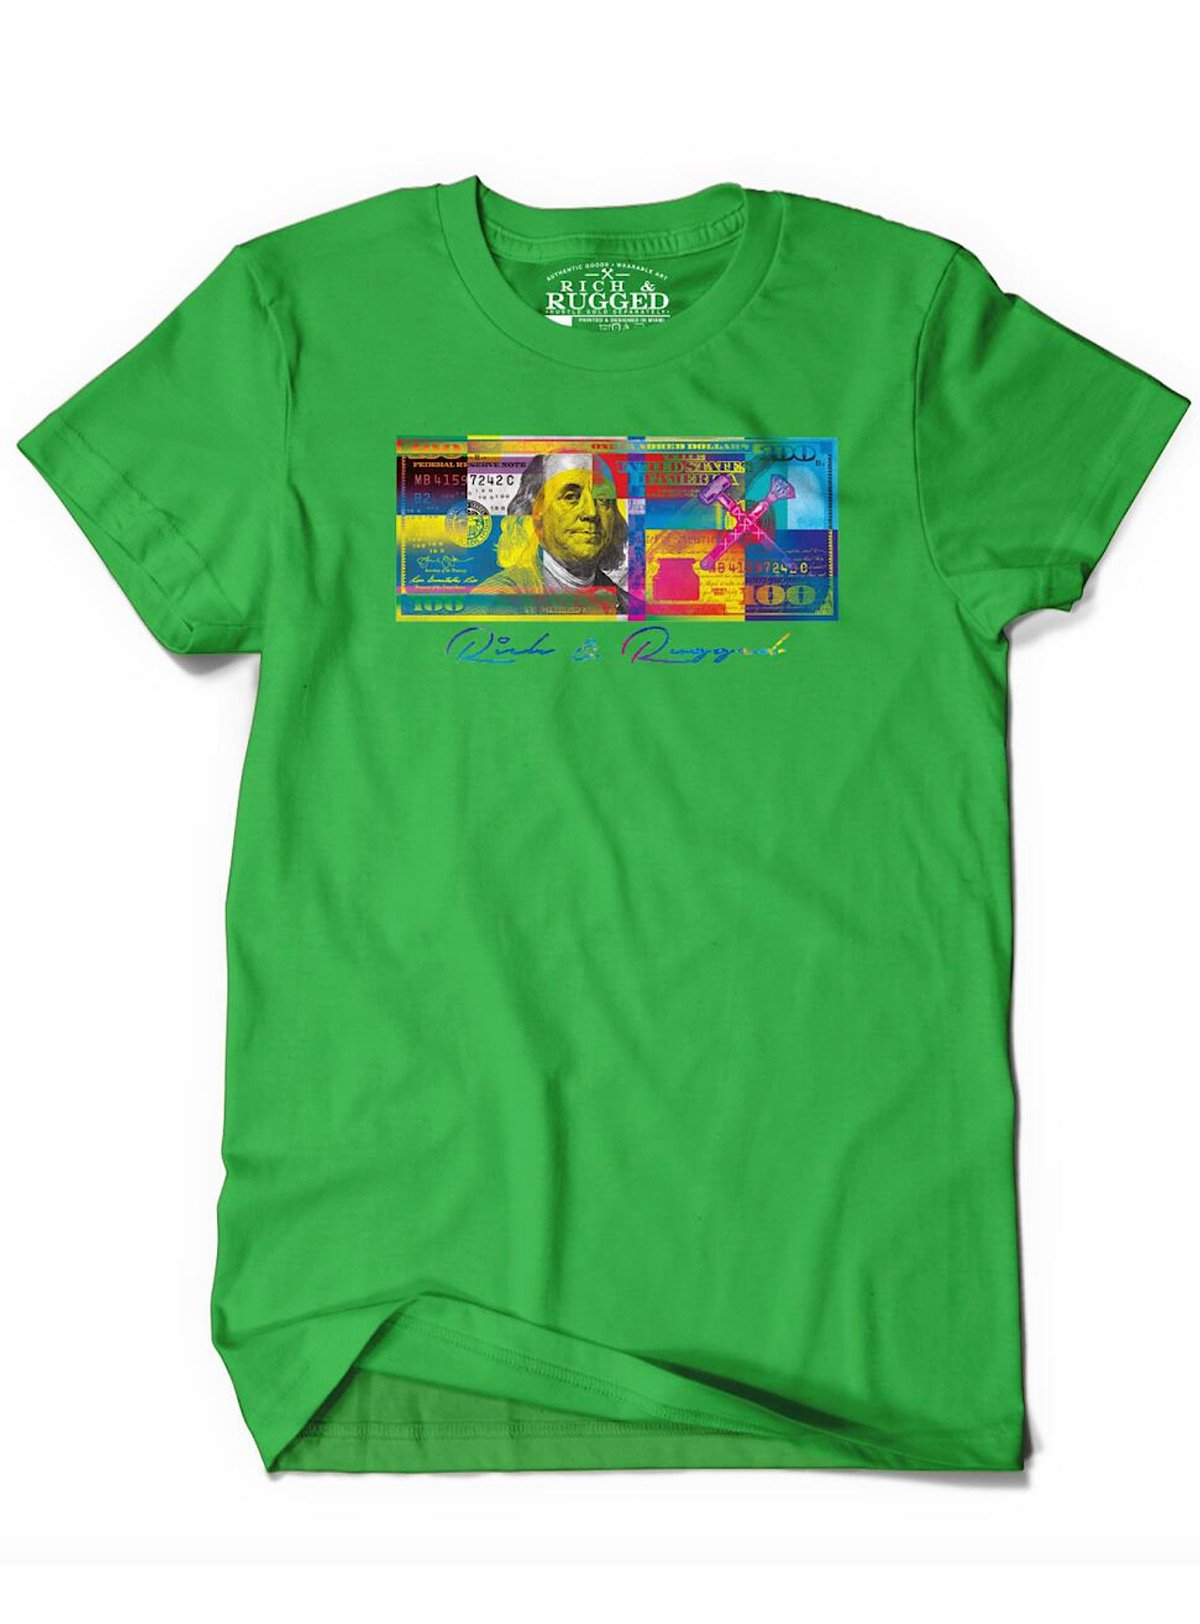 Rich & Rugged T-Shirt - Color Money - Green